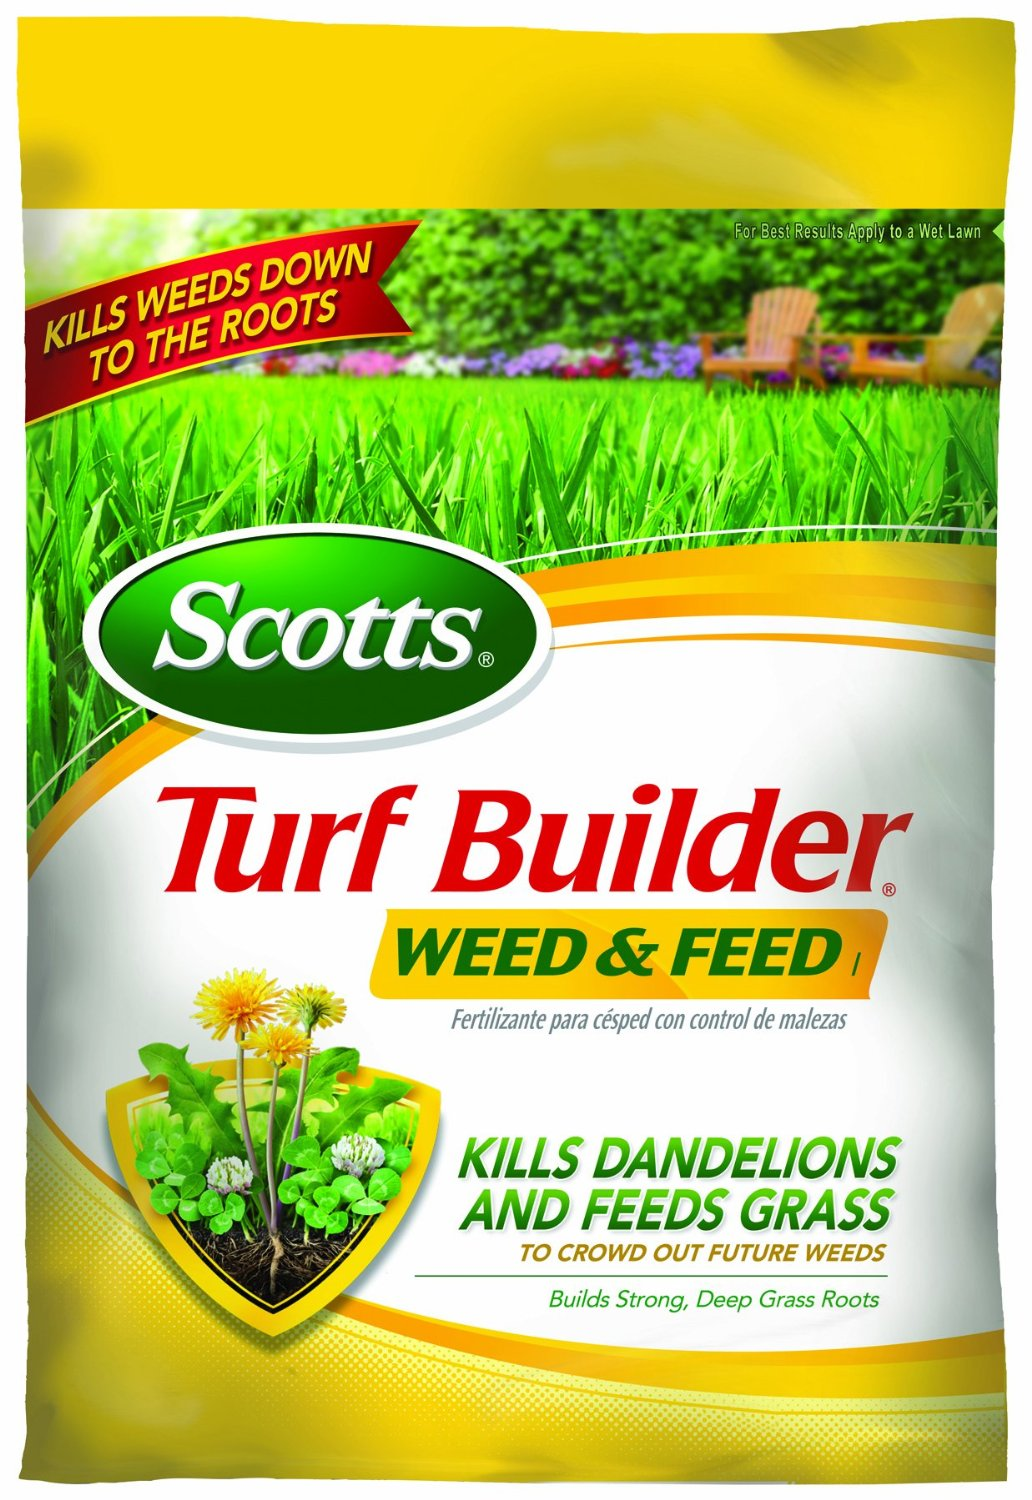 You'll want to apply this Lawn Food product in late Spring.